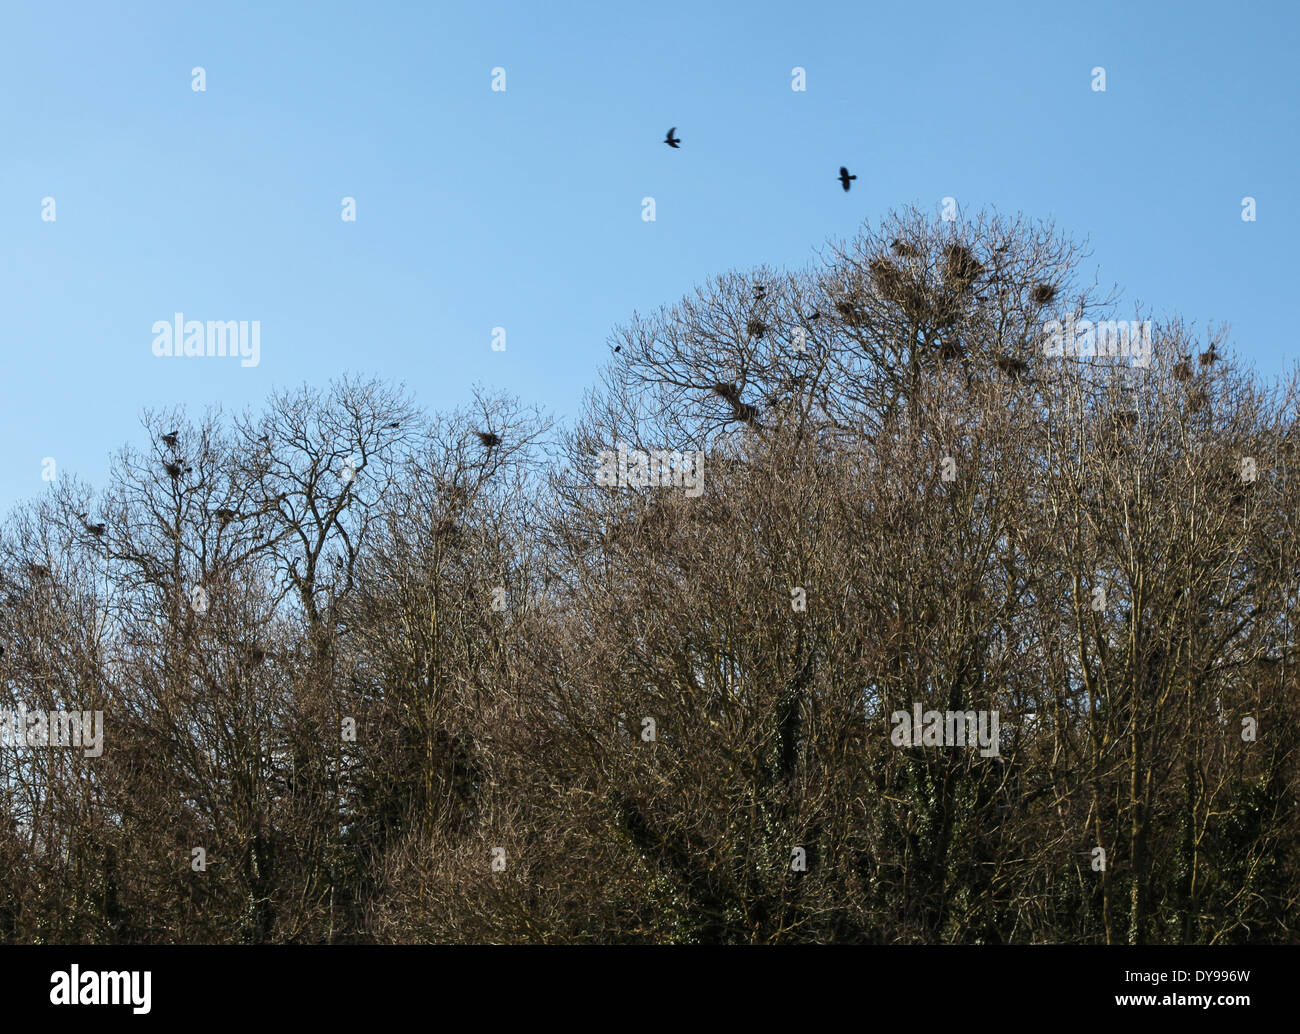 Rooks flying next to a rookery in the tree tops - Stock Image